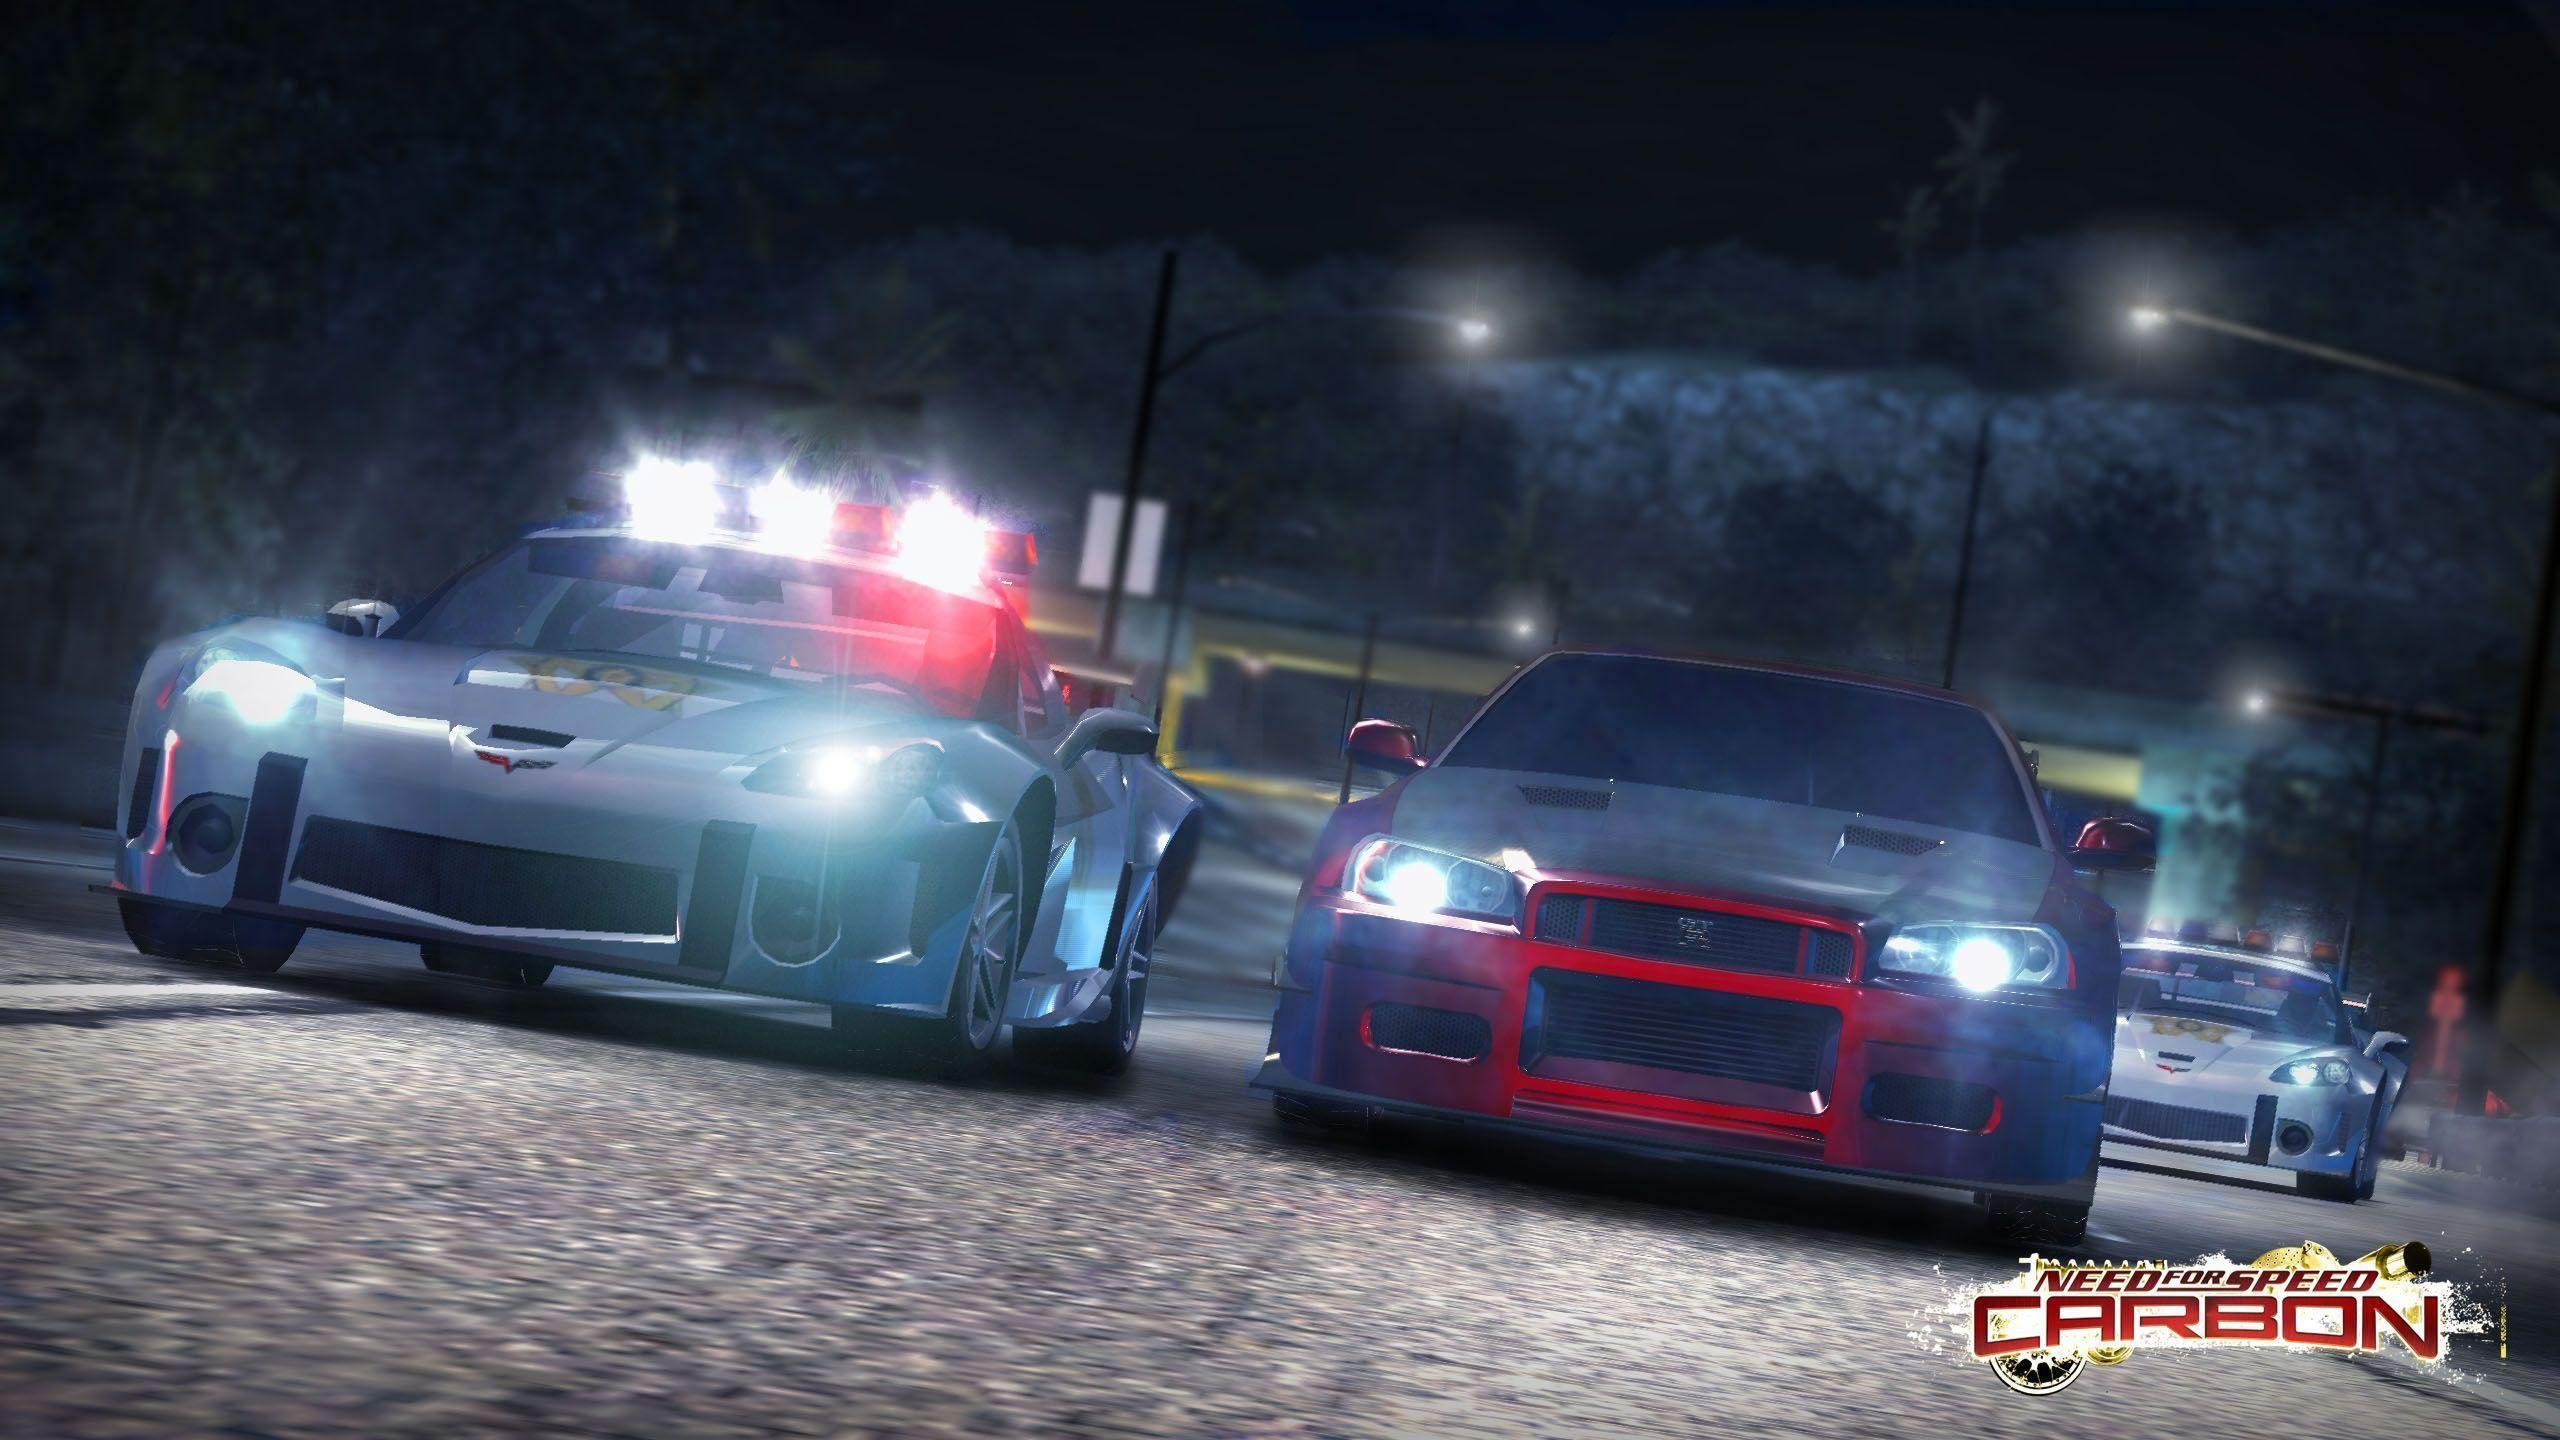 Hd Nfs Cars Wallpapers Need For Speed Carbon Wallpaper 183 ①